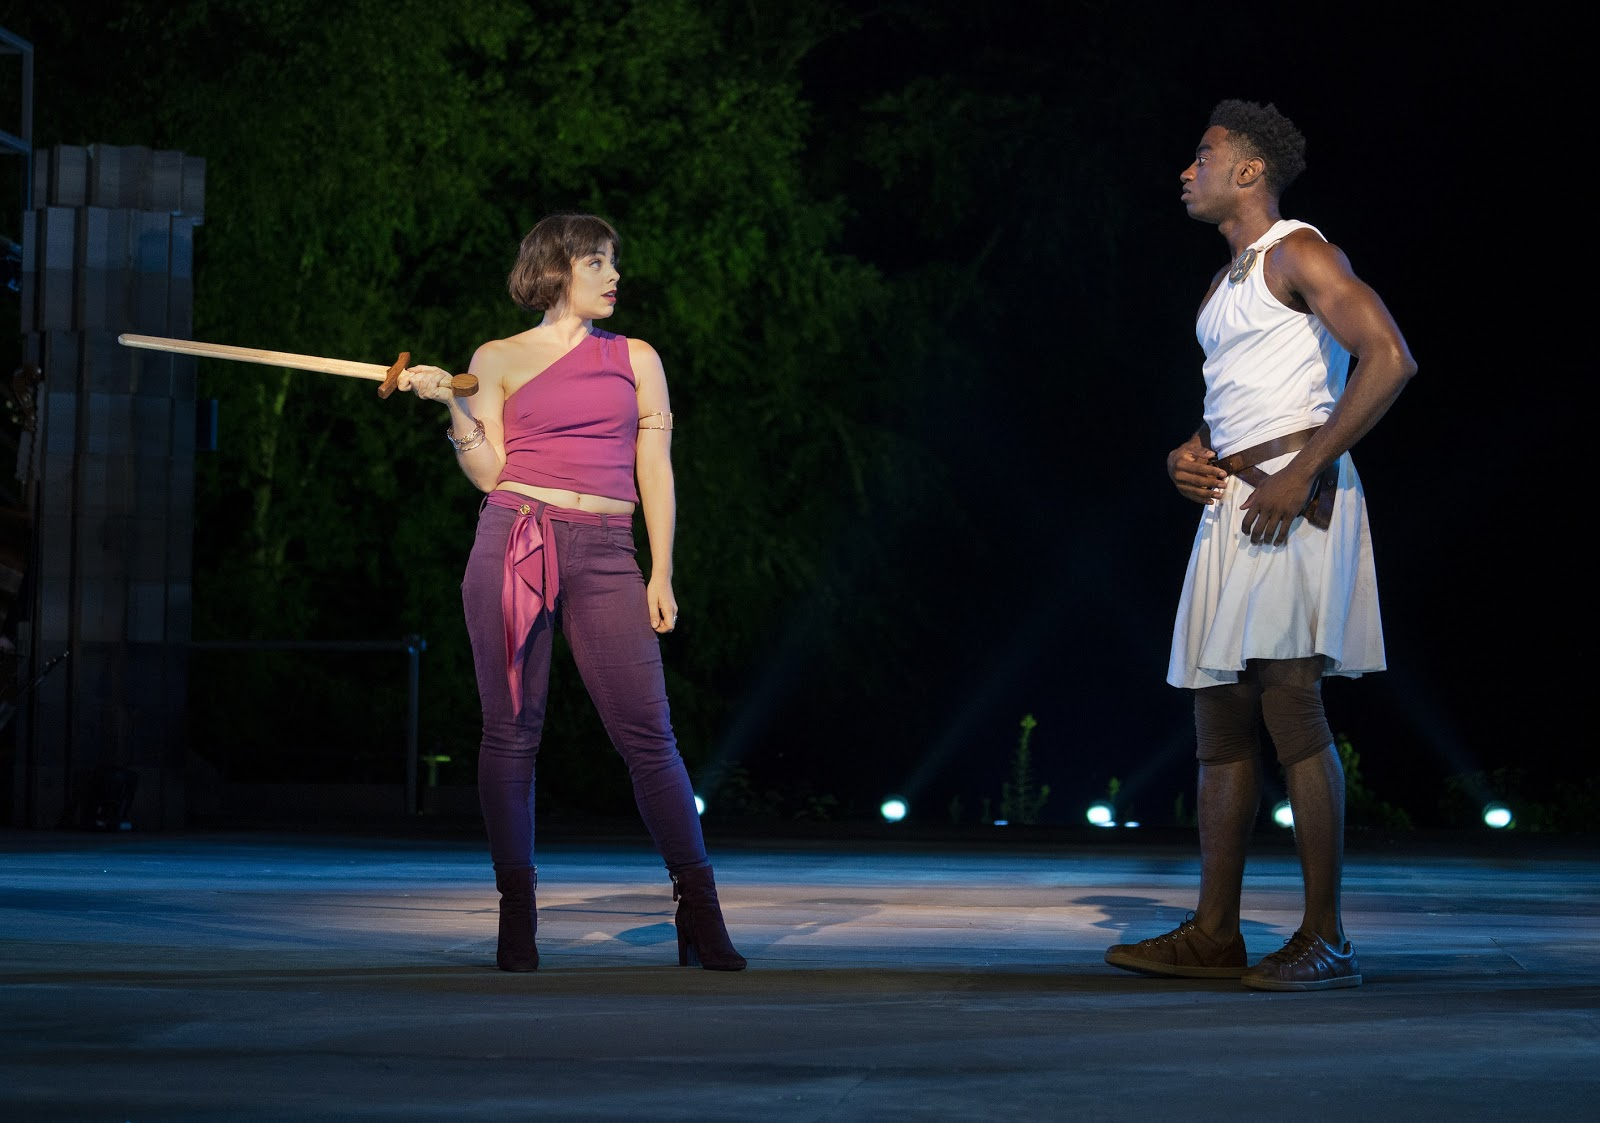 Krysta Rodriguez and Jelani Alladin in The Public Theater's free Public Works musical adaptation of Hercules, with music by Alan Menken, lyrics by David Zippel, book by Kristoffer Diaz, choreography by Chase Brock, and directed by Lear deBessonet, running at the Delacorte Theater. Photo credit: Joan Marcus.